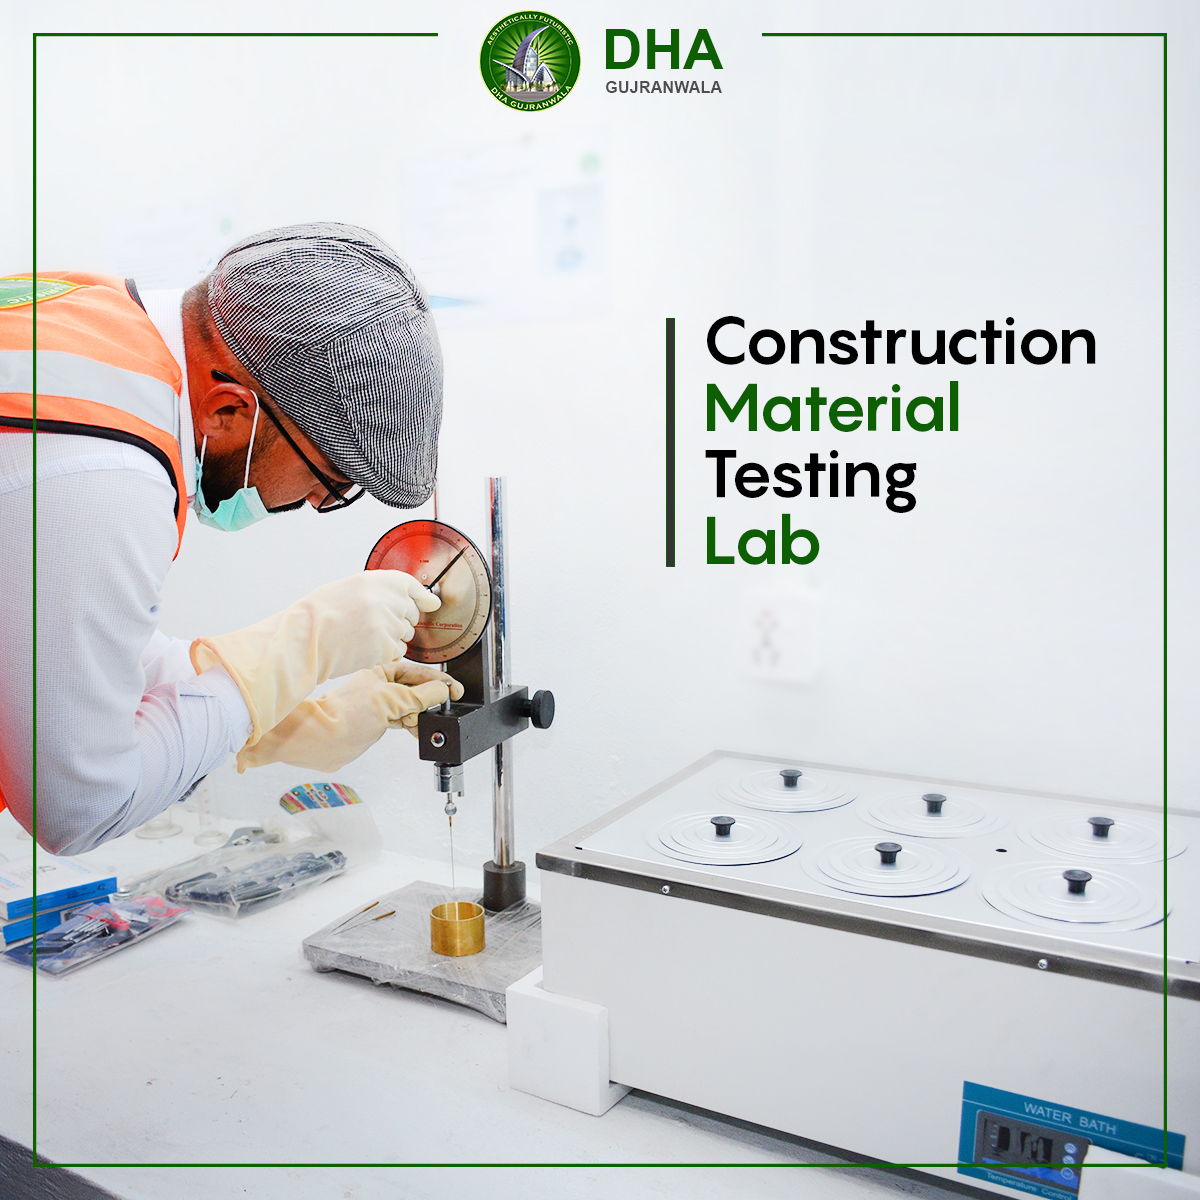 Ongoing construction material testing at the laboratory.  Development work has paced up since the construction material testing is now being conducted at DHA Gujranwala's own lab to avoid any delays.   #itsdhagwa #DHAGujranwala #futuristic #inauguration #laboratory